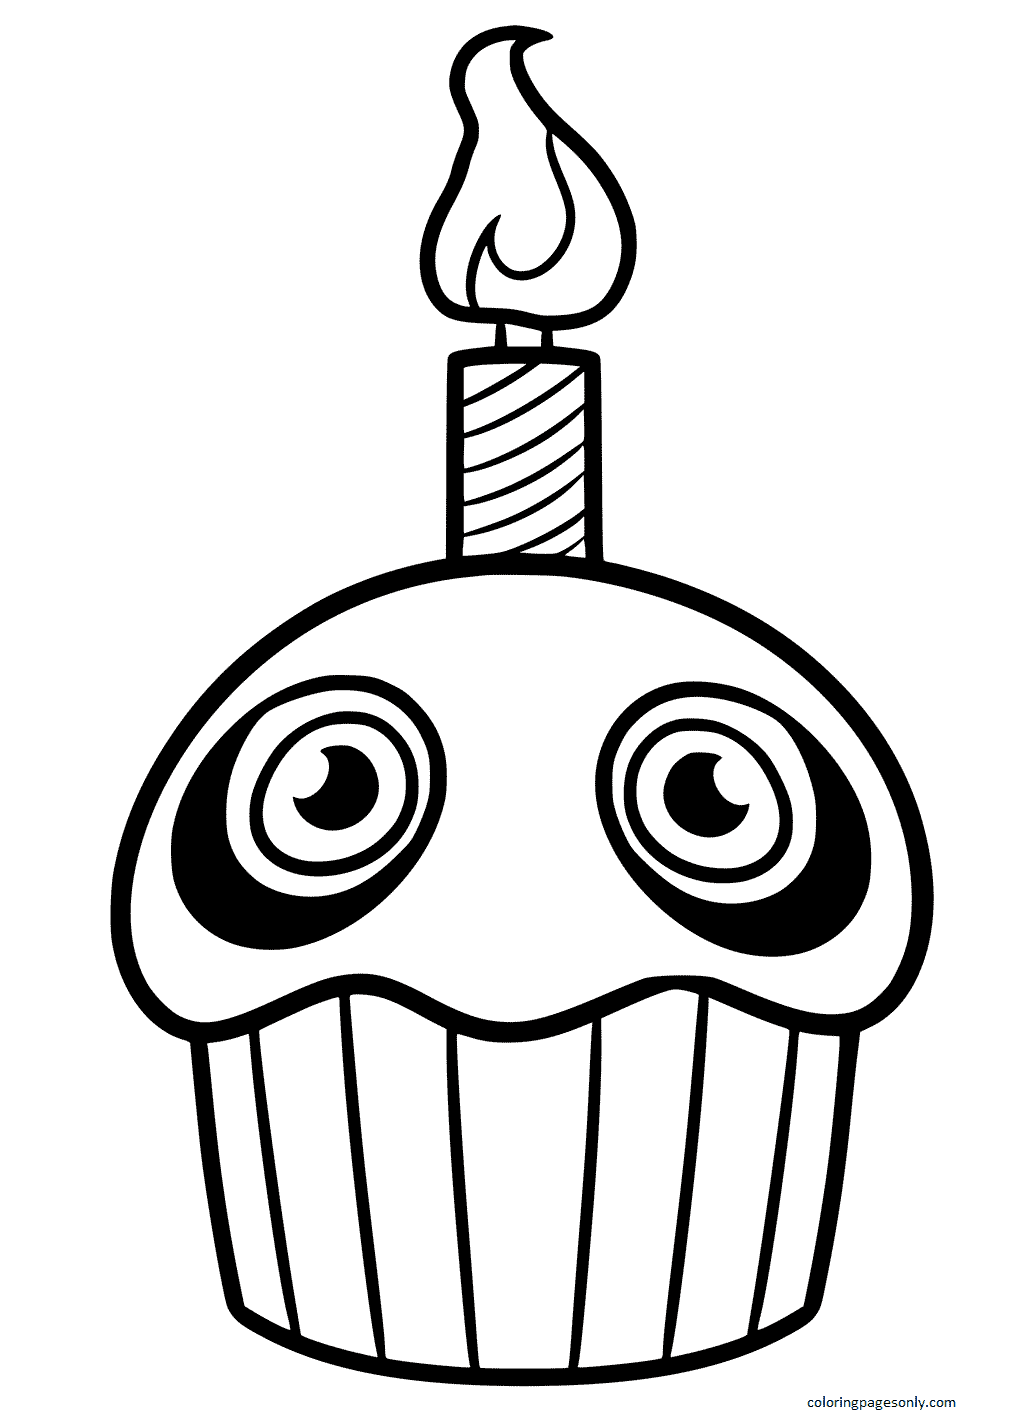 Five Nights at Freddy's Cupcake Coloring Page